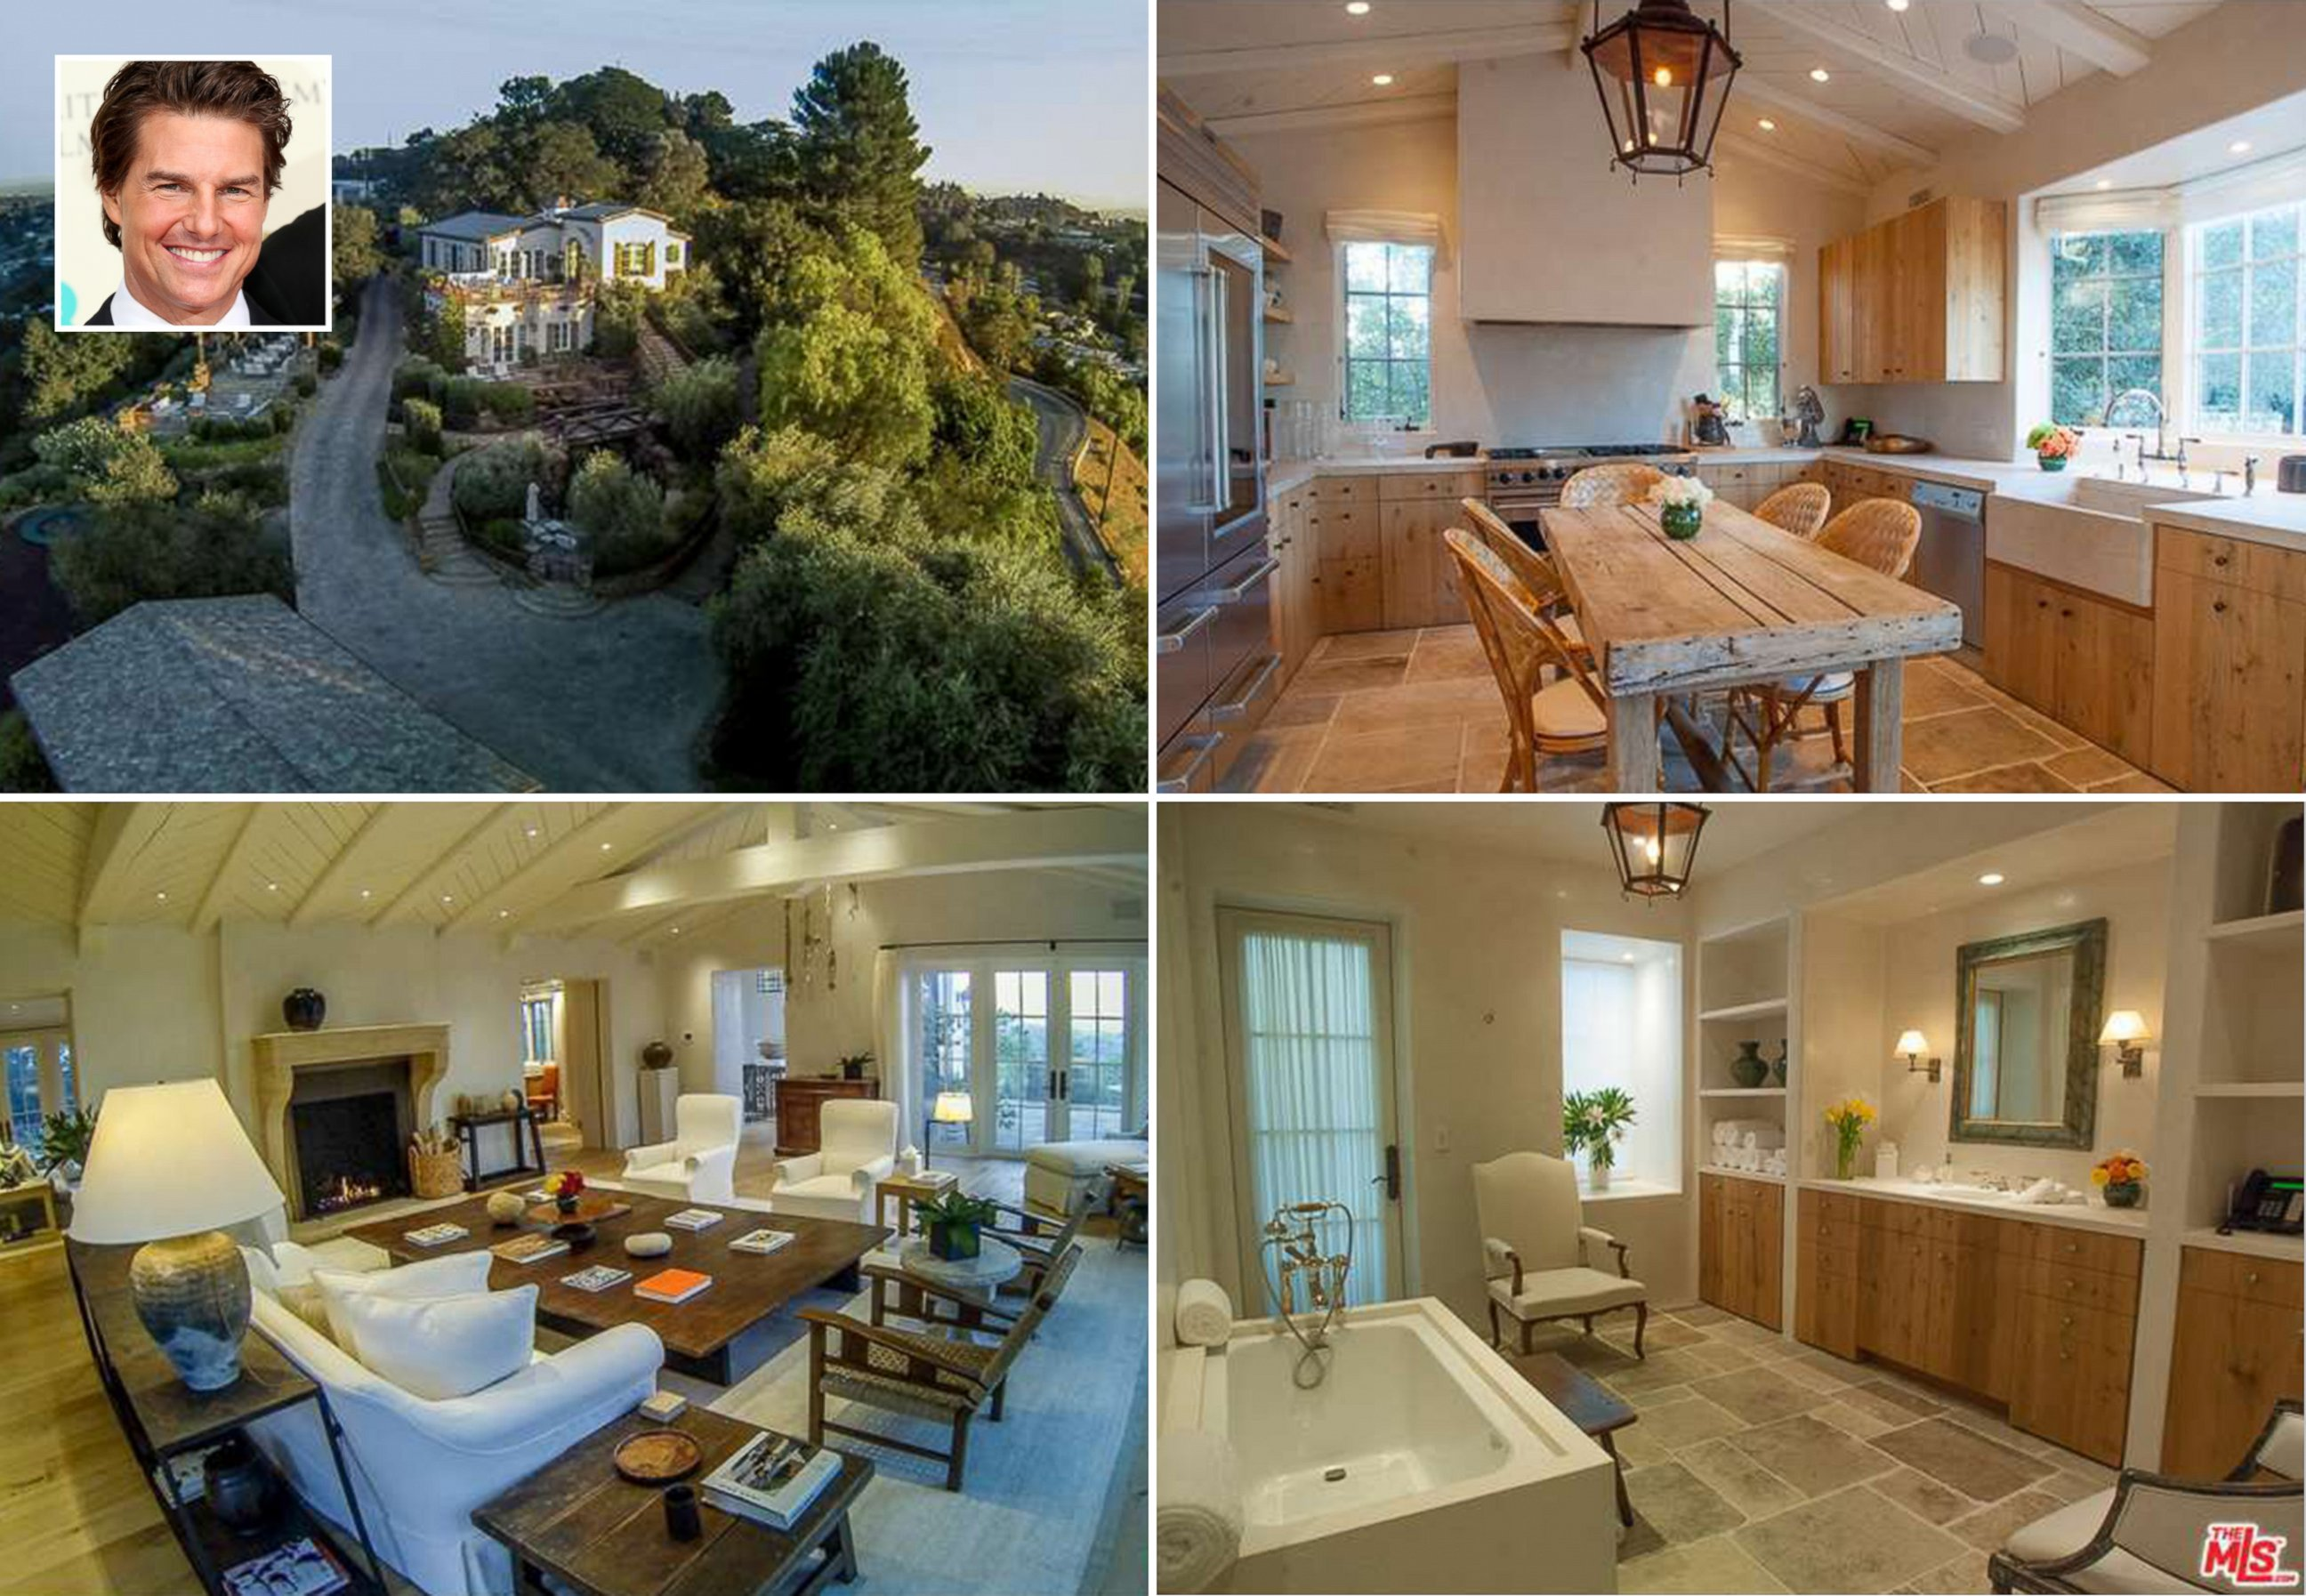 Smart Tom Cruise Reportedly Lists Hollywood Hills E Abc News Tom Cruise House Pa Tom Cruise House Inside curbed Tom Cruise House